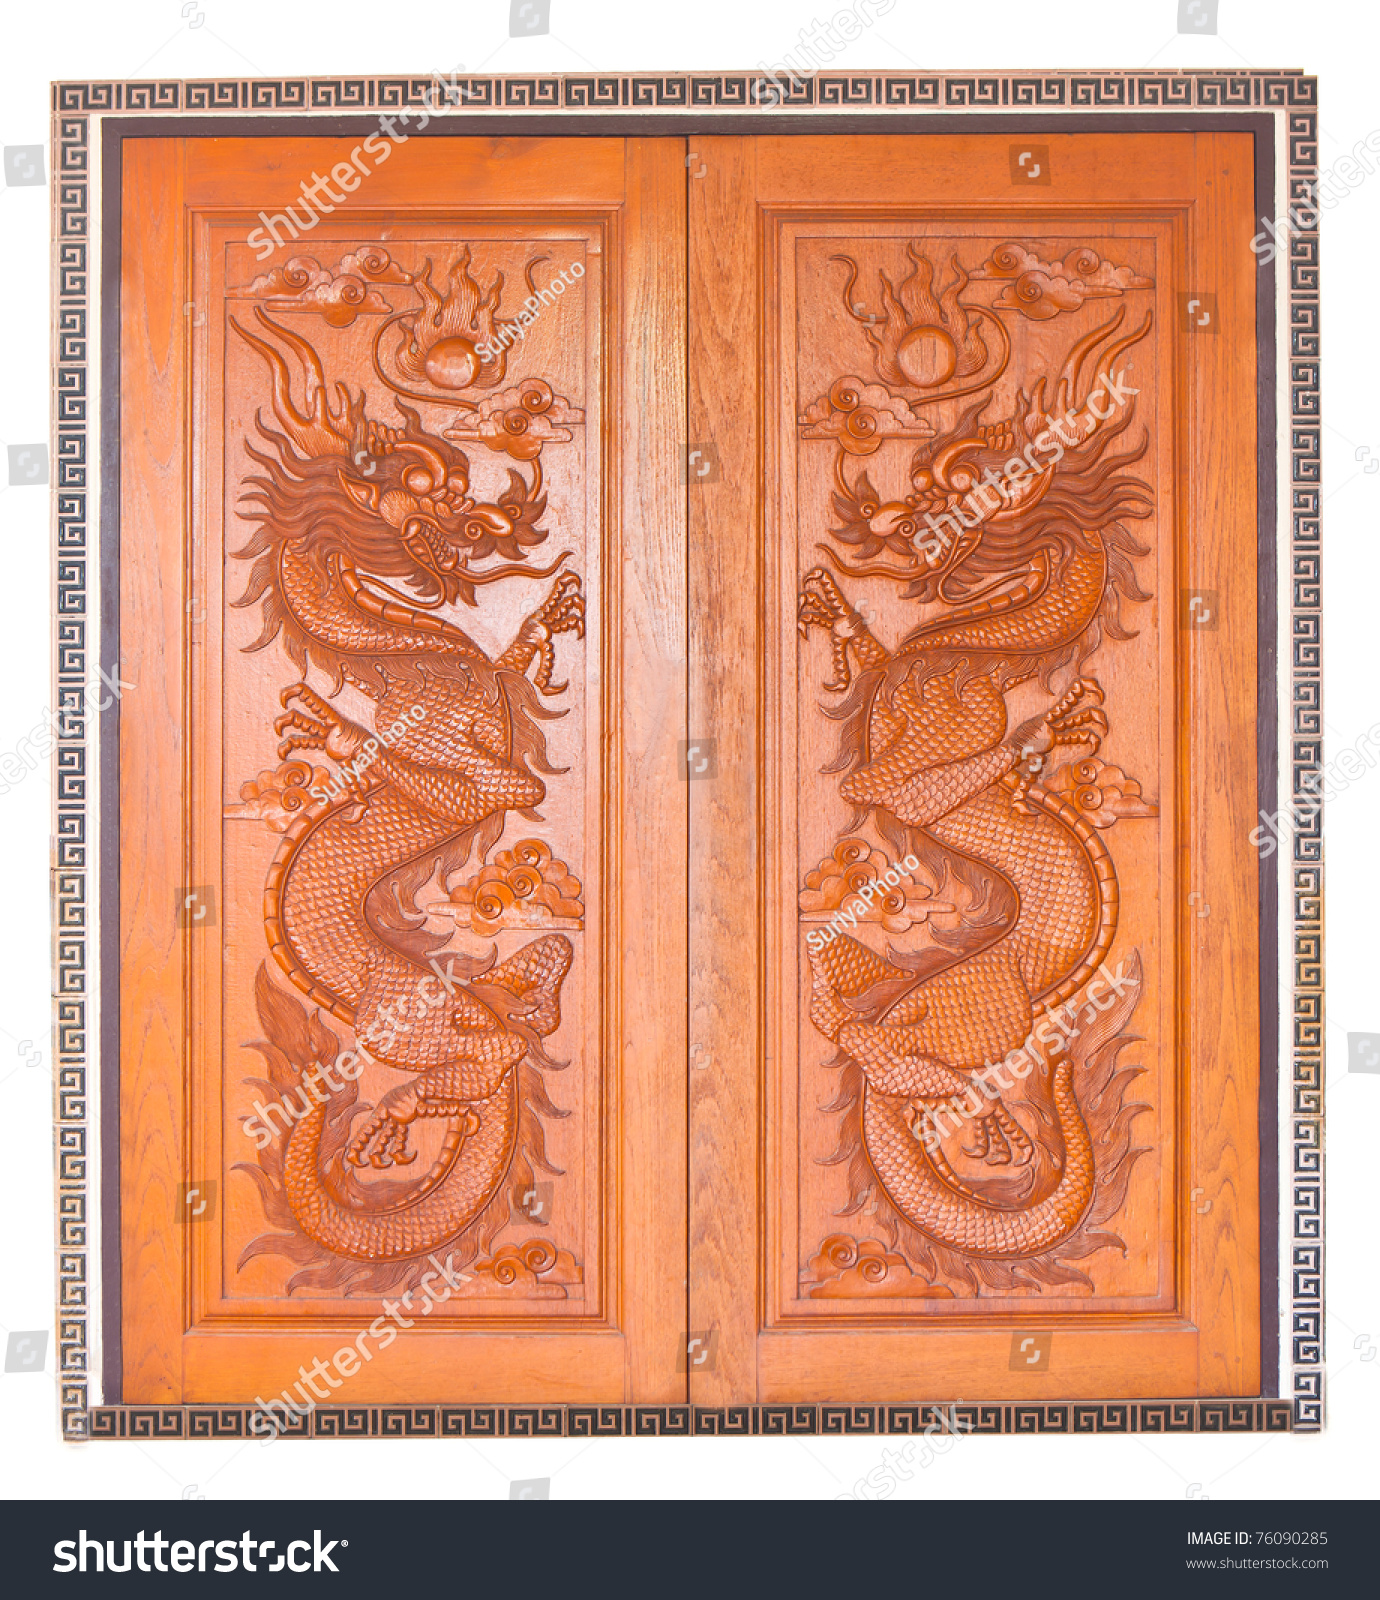 Chinese dragon wooden door & Chinese Dragon Wooden Door Stock Photo (Royalty Free) 76090285 ...